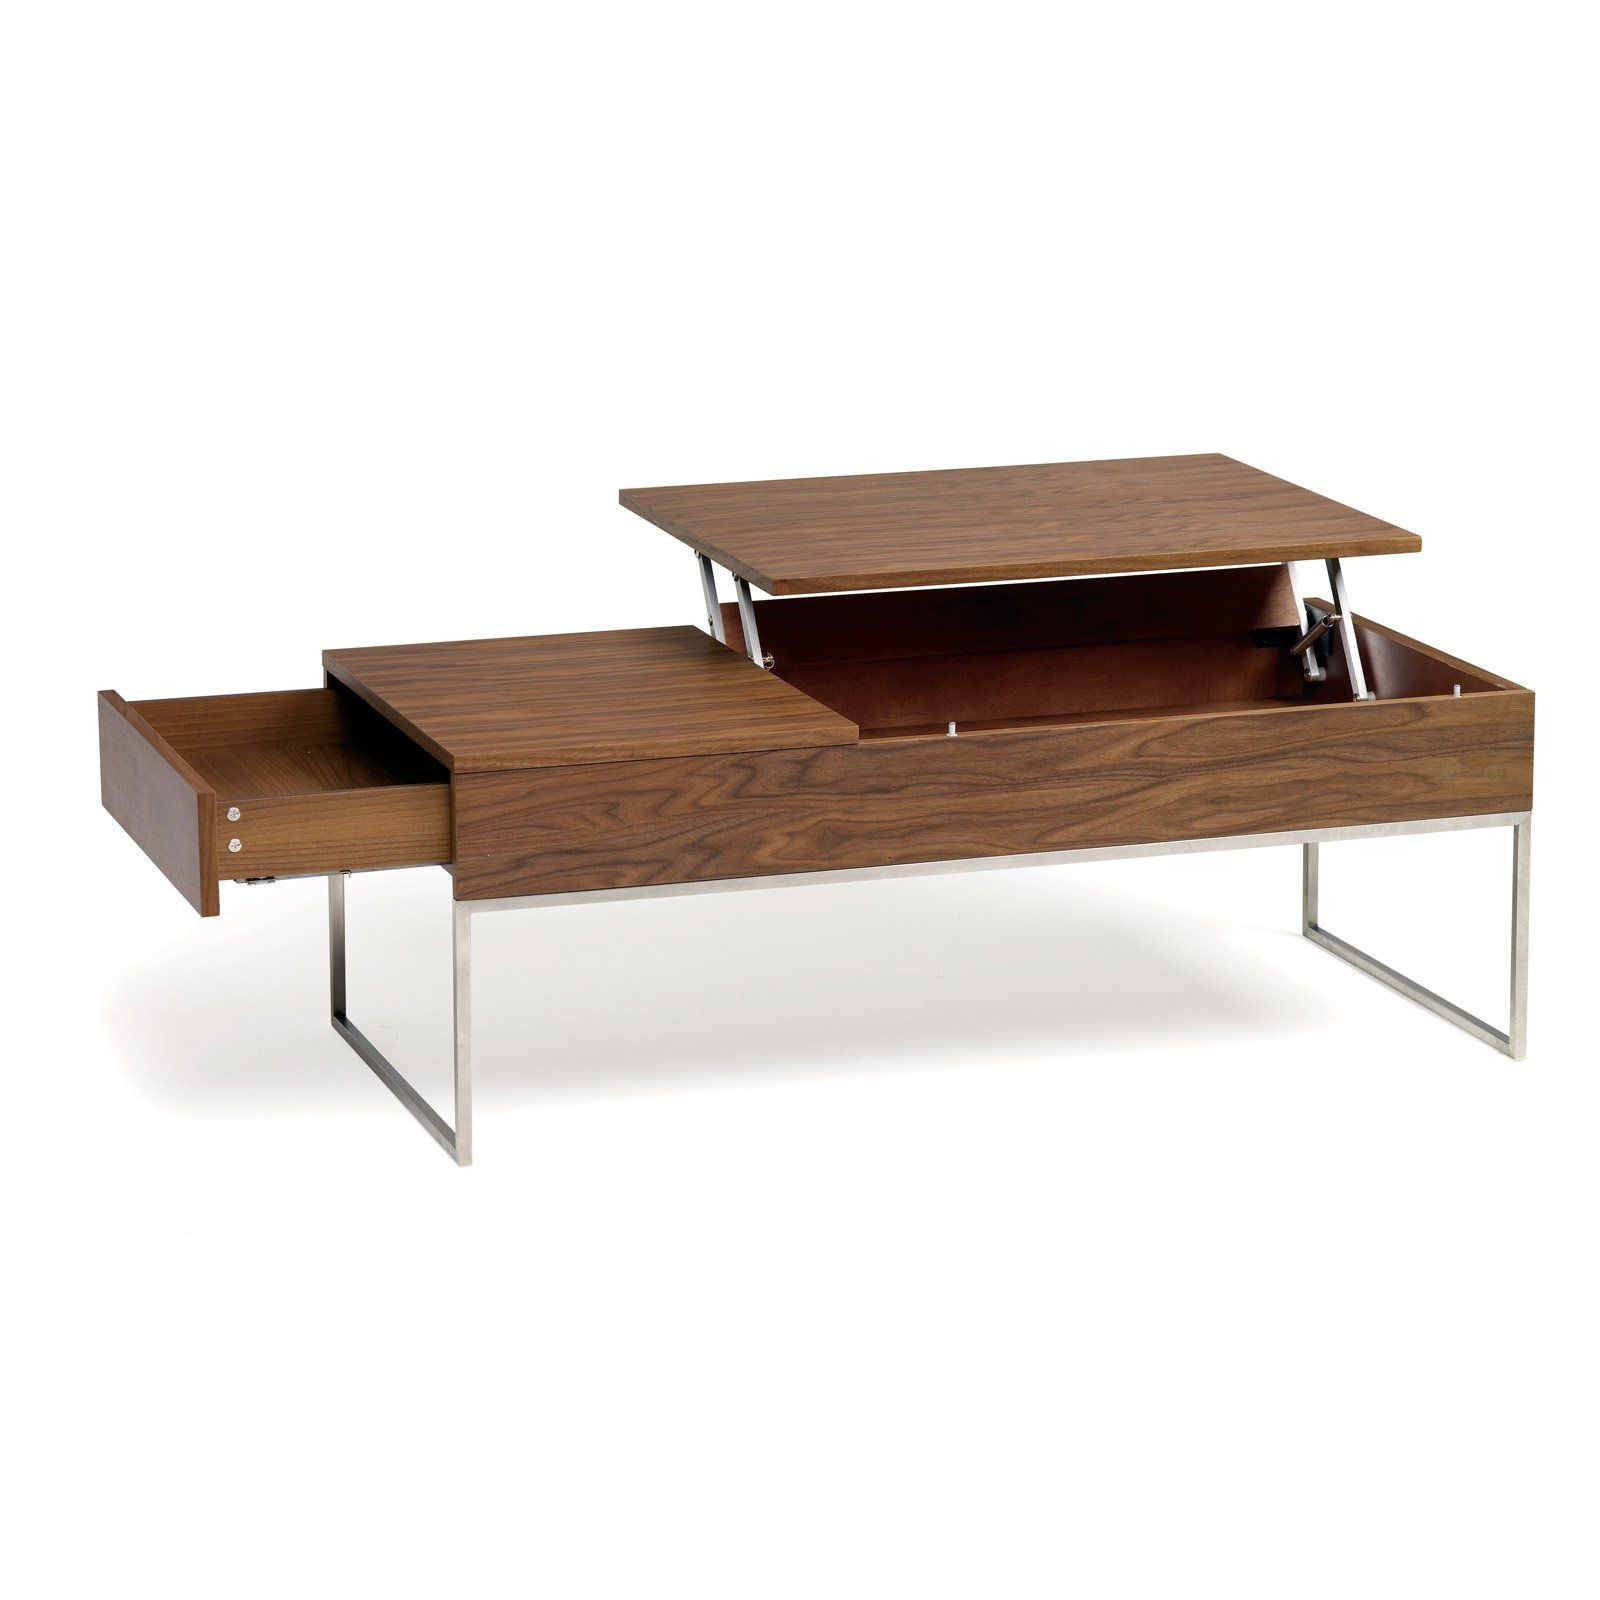 Nuevo marlow lift top coffee table the nuevo marlow lift top nuevo marlow lift top coffee table the nuevo marlow lift top coffee table geotapseo Image collections